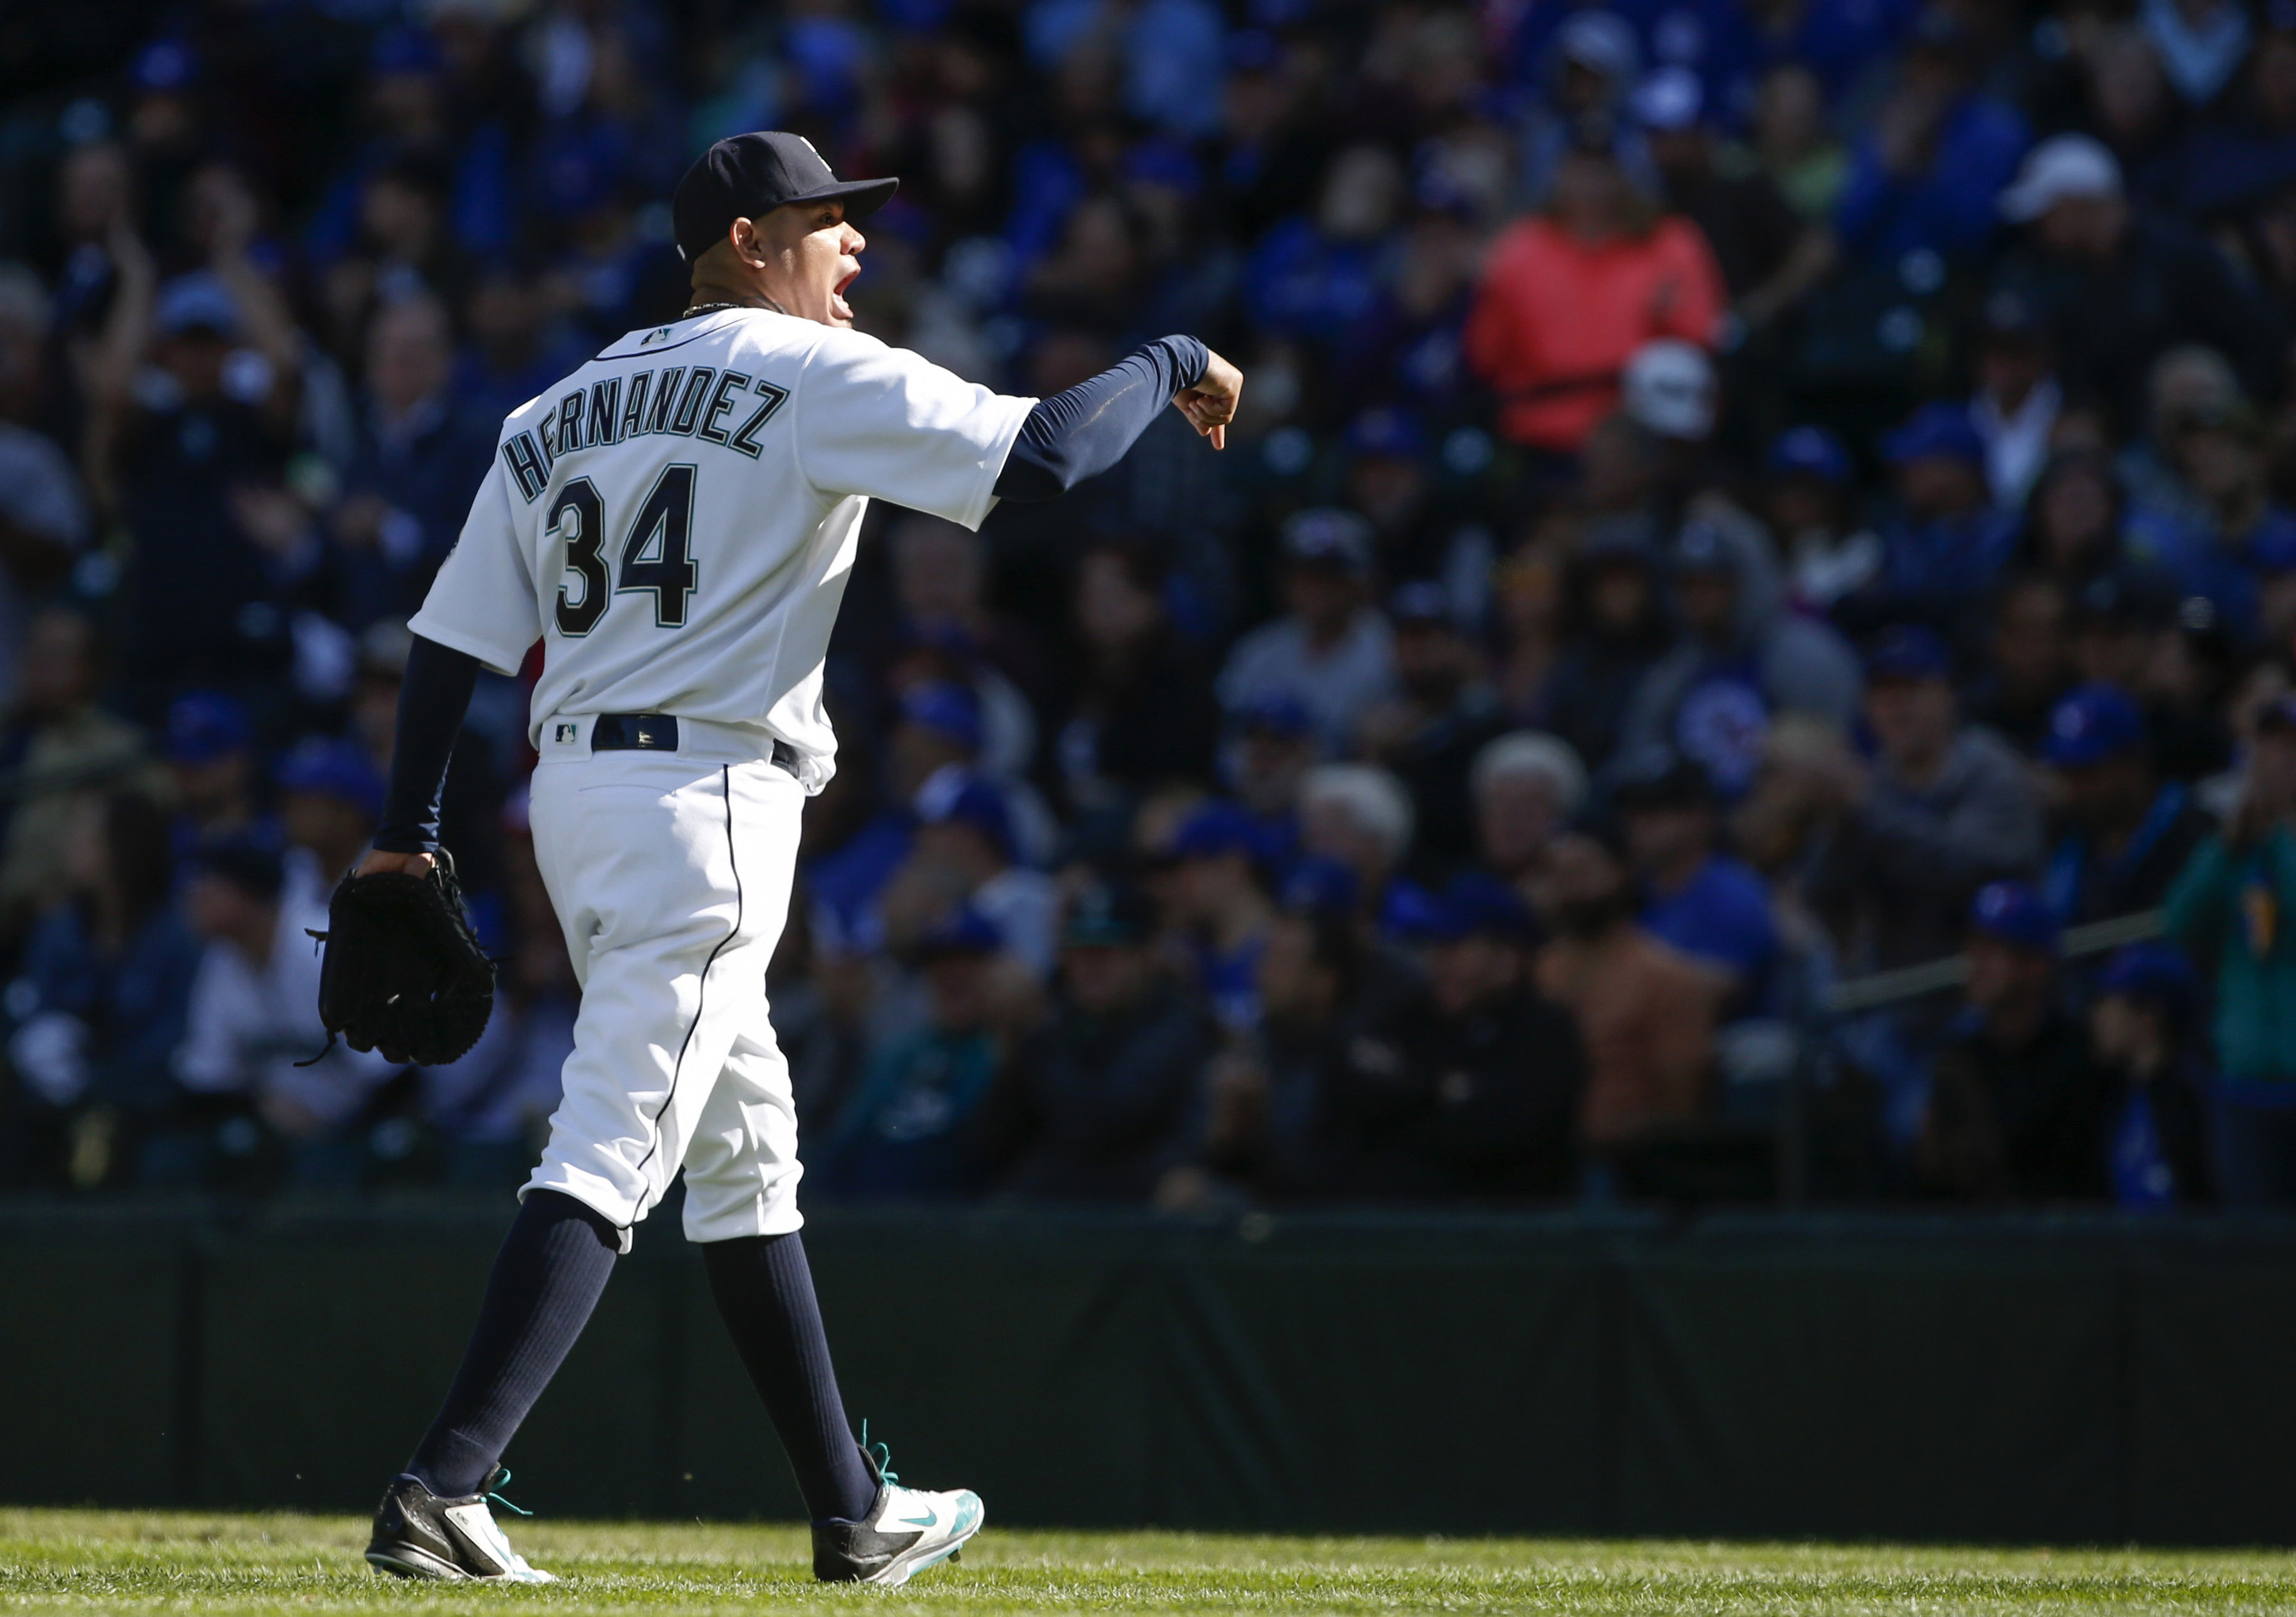 Seattle Mariners 40th Anniversary All-Time Roster: The Pitcher